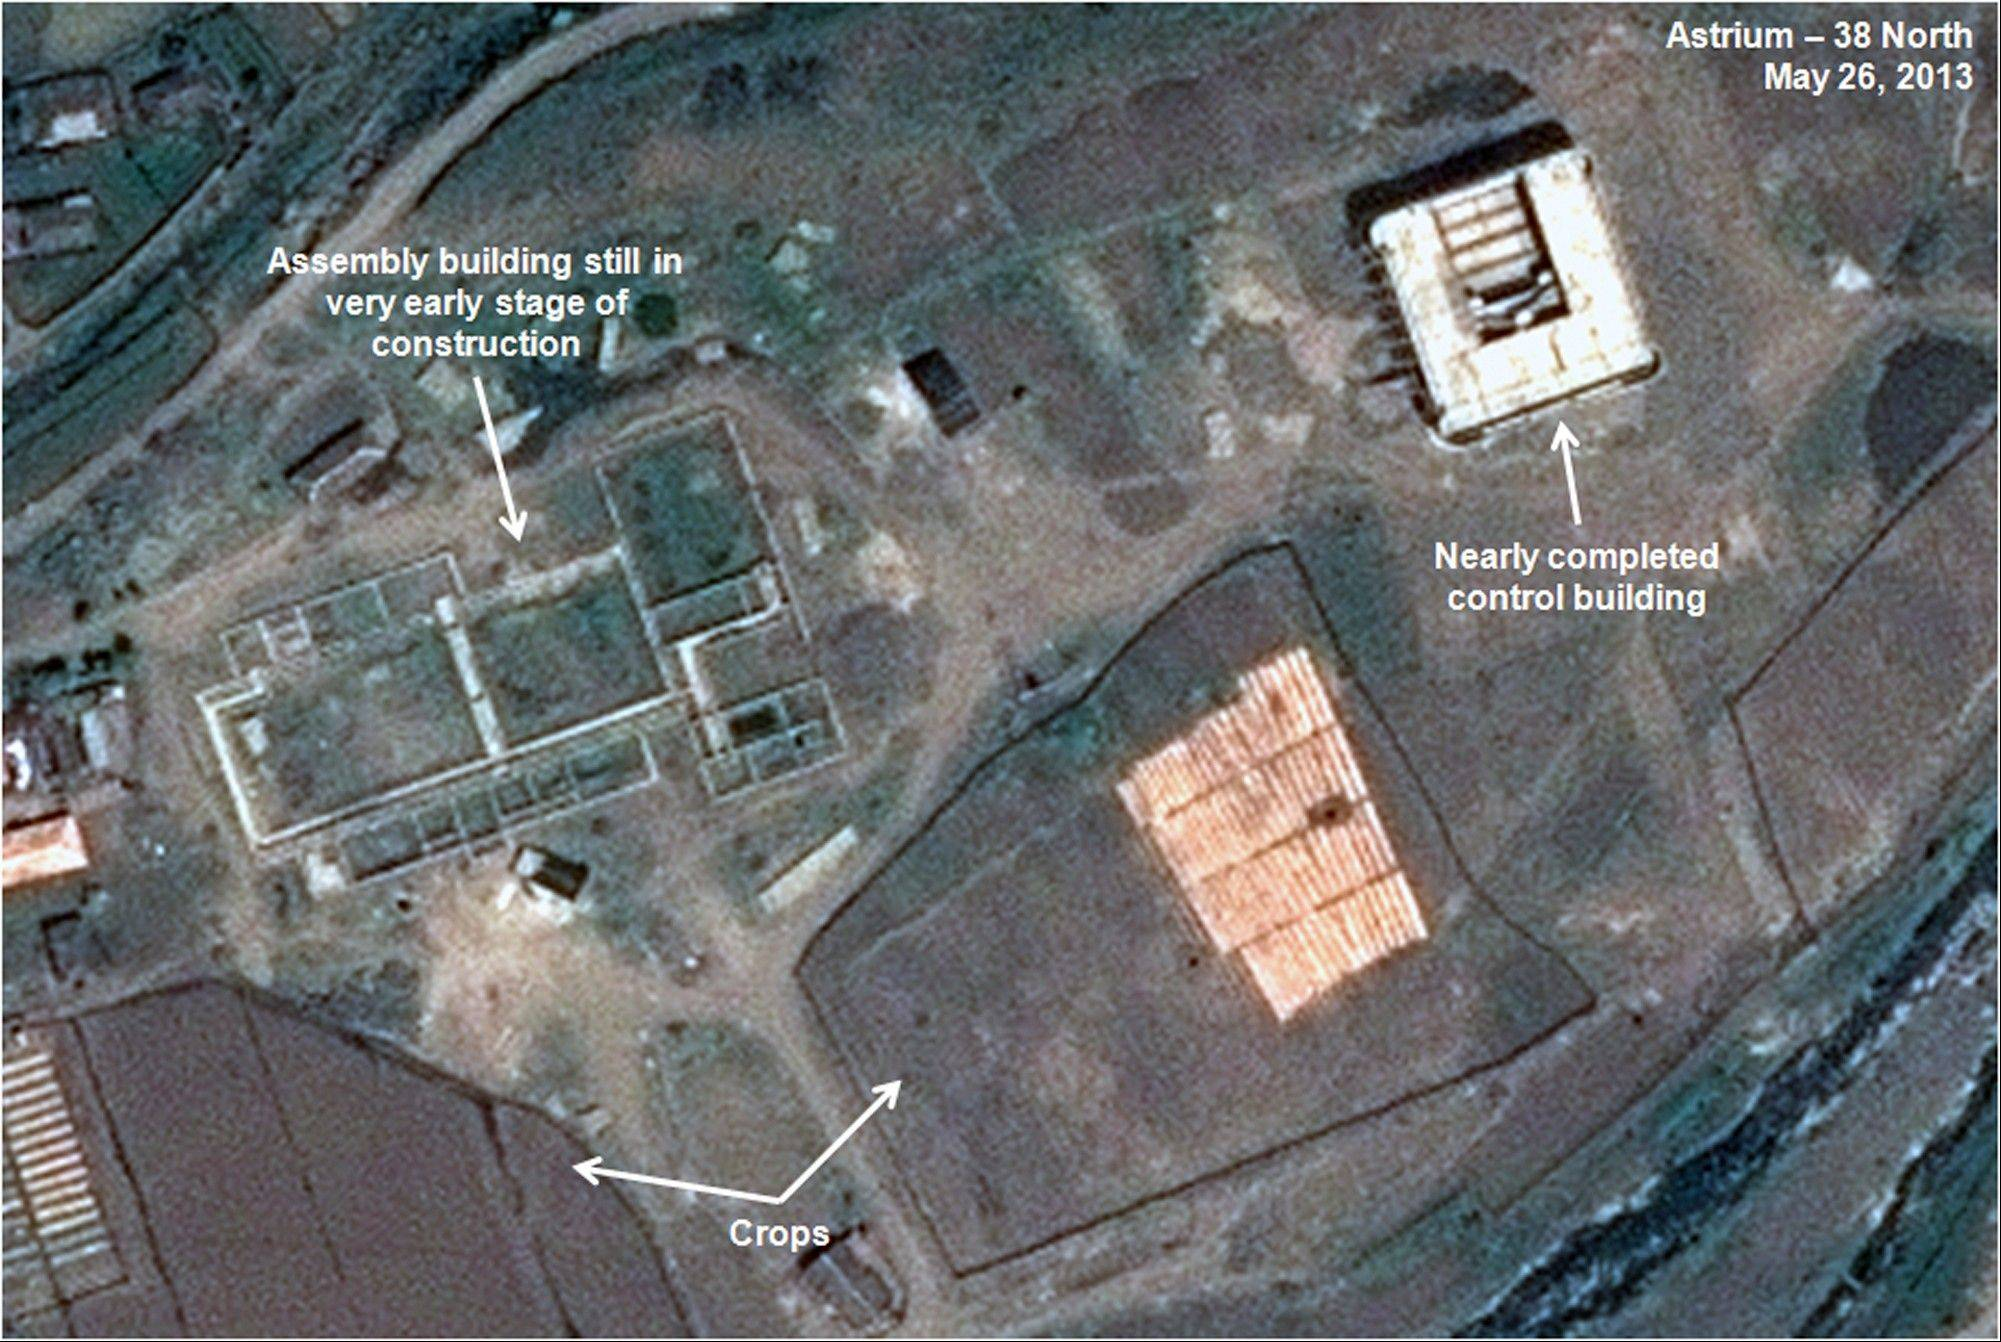 This May 26, 2013, satellite image shows an unfinished new missile assembly building, top left, and control center, top right, at the Tonghae facility in North Korea. An eight-month construction standstill at the North Korean site meant to launch bigger and better long-range rockets may signal Pyongyang is slowing or even stopping development of larger rockets, according to a new analysis of recent satellite imagery. (AP Photo/Astrium — 38 North) CREDIT MANDATORY